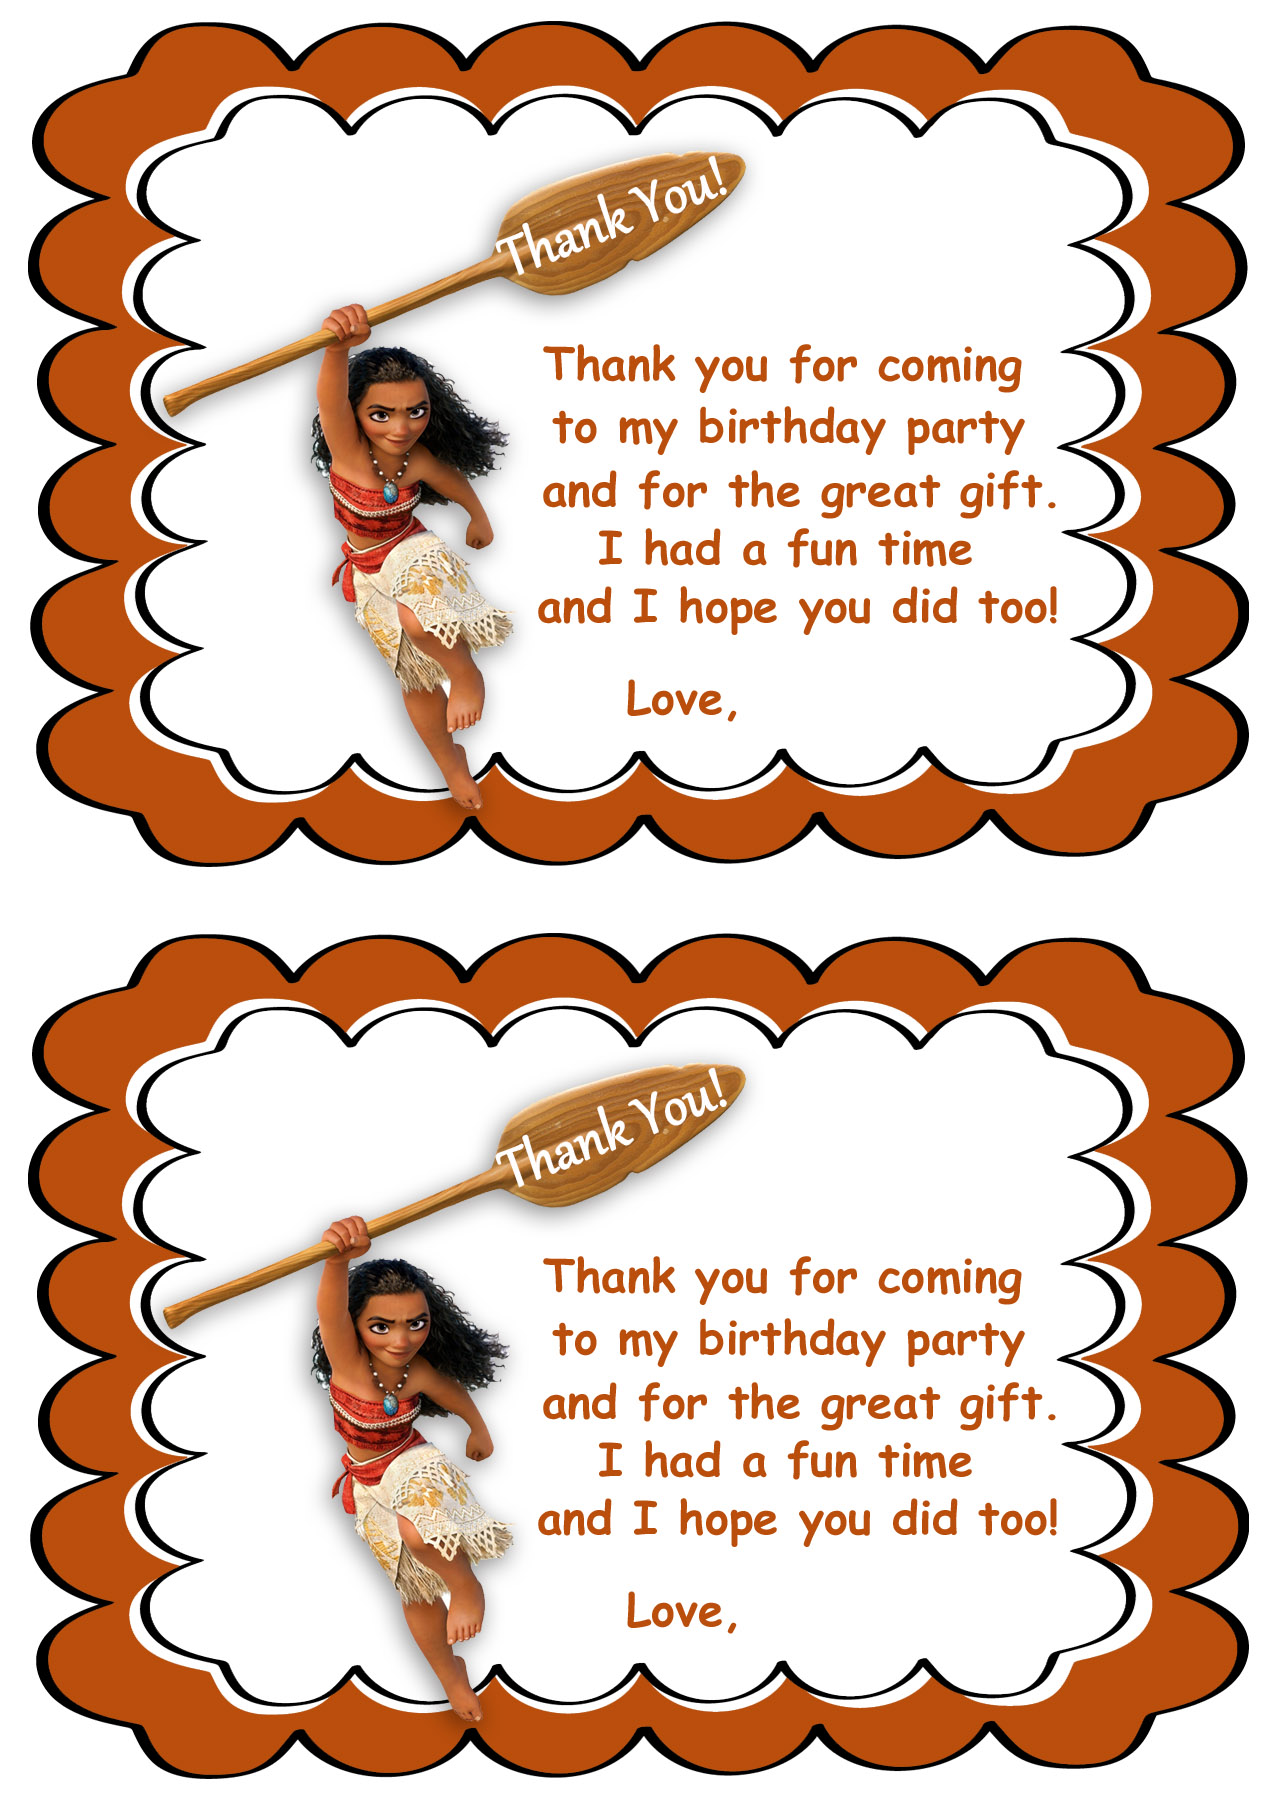 moana thank you cards birthday printable